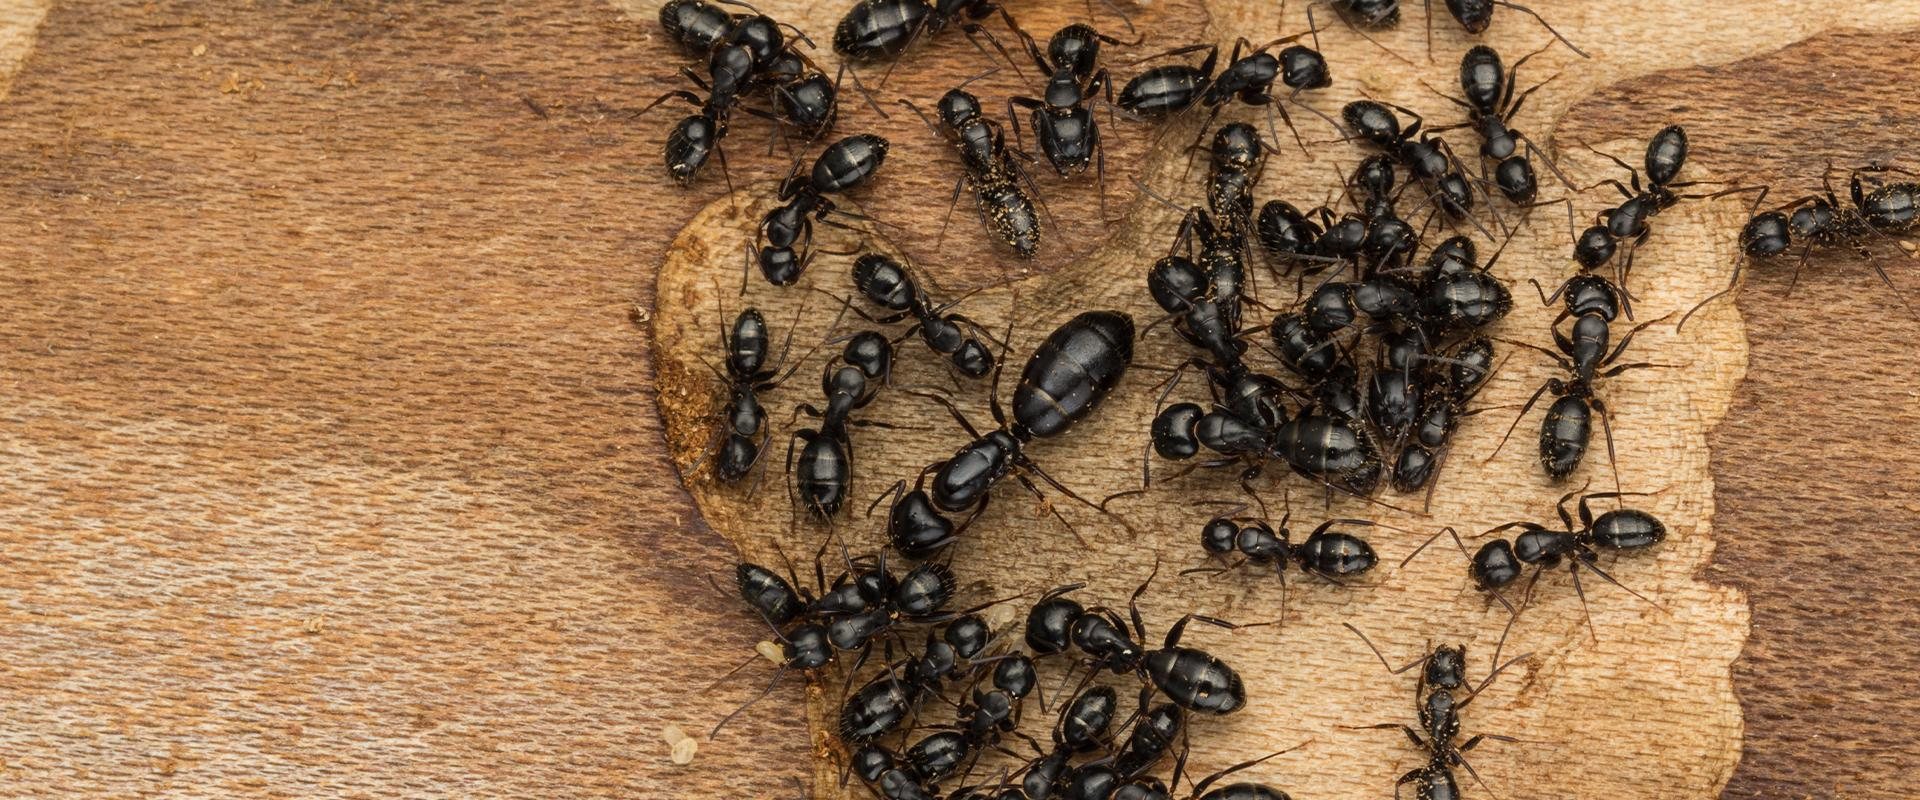 black ants on wood